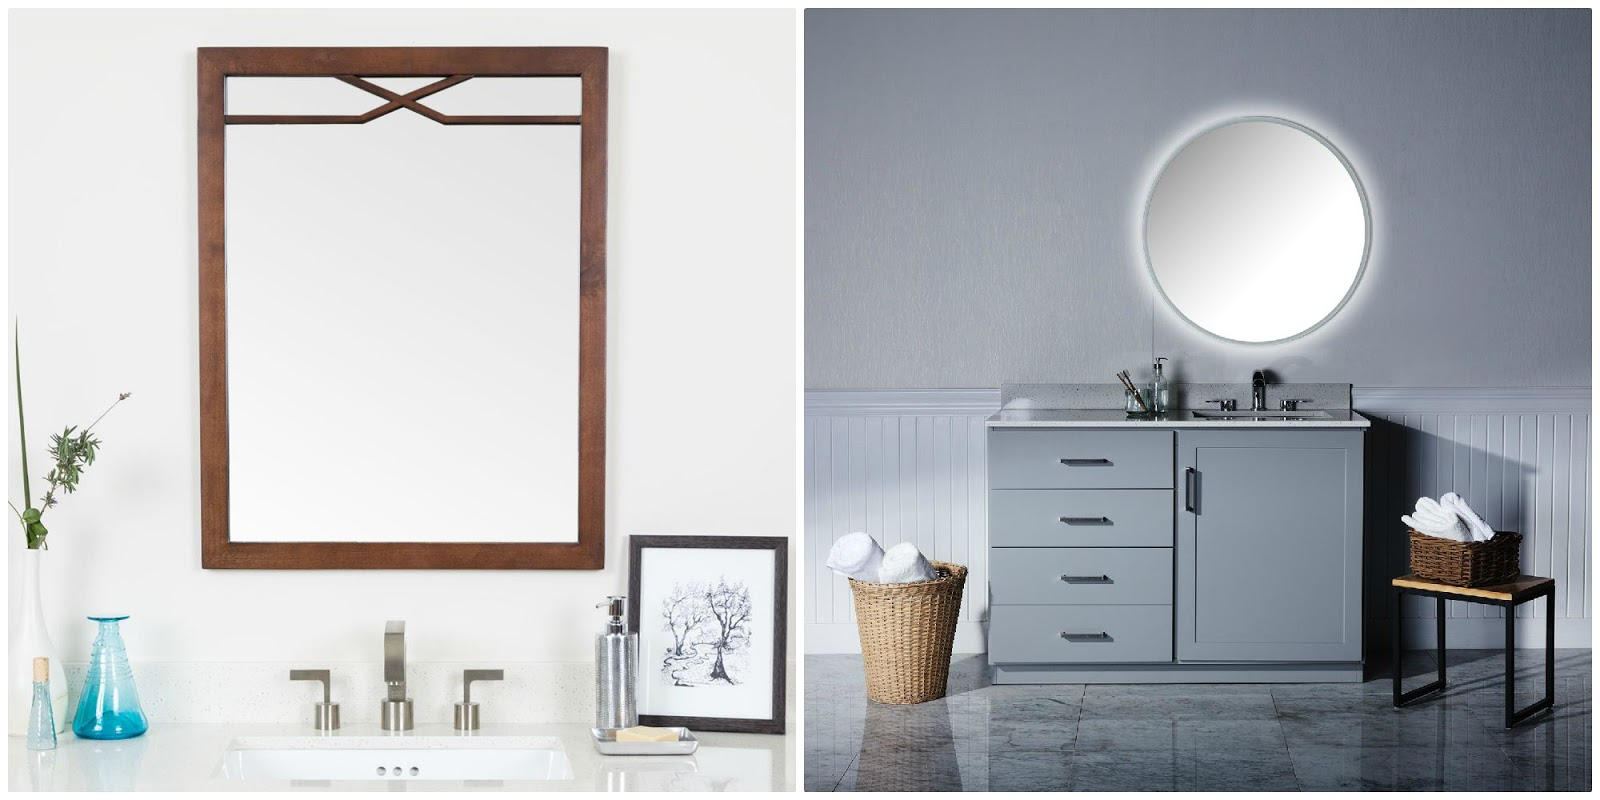 Good Framed Wall Mirror Round LED Mirror